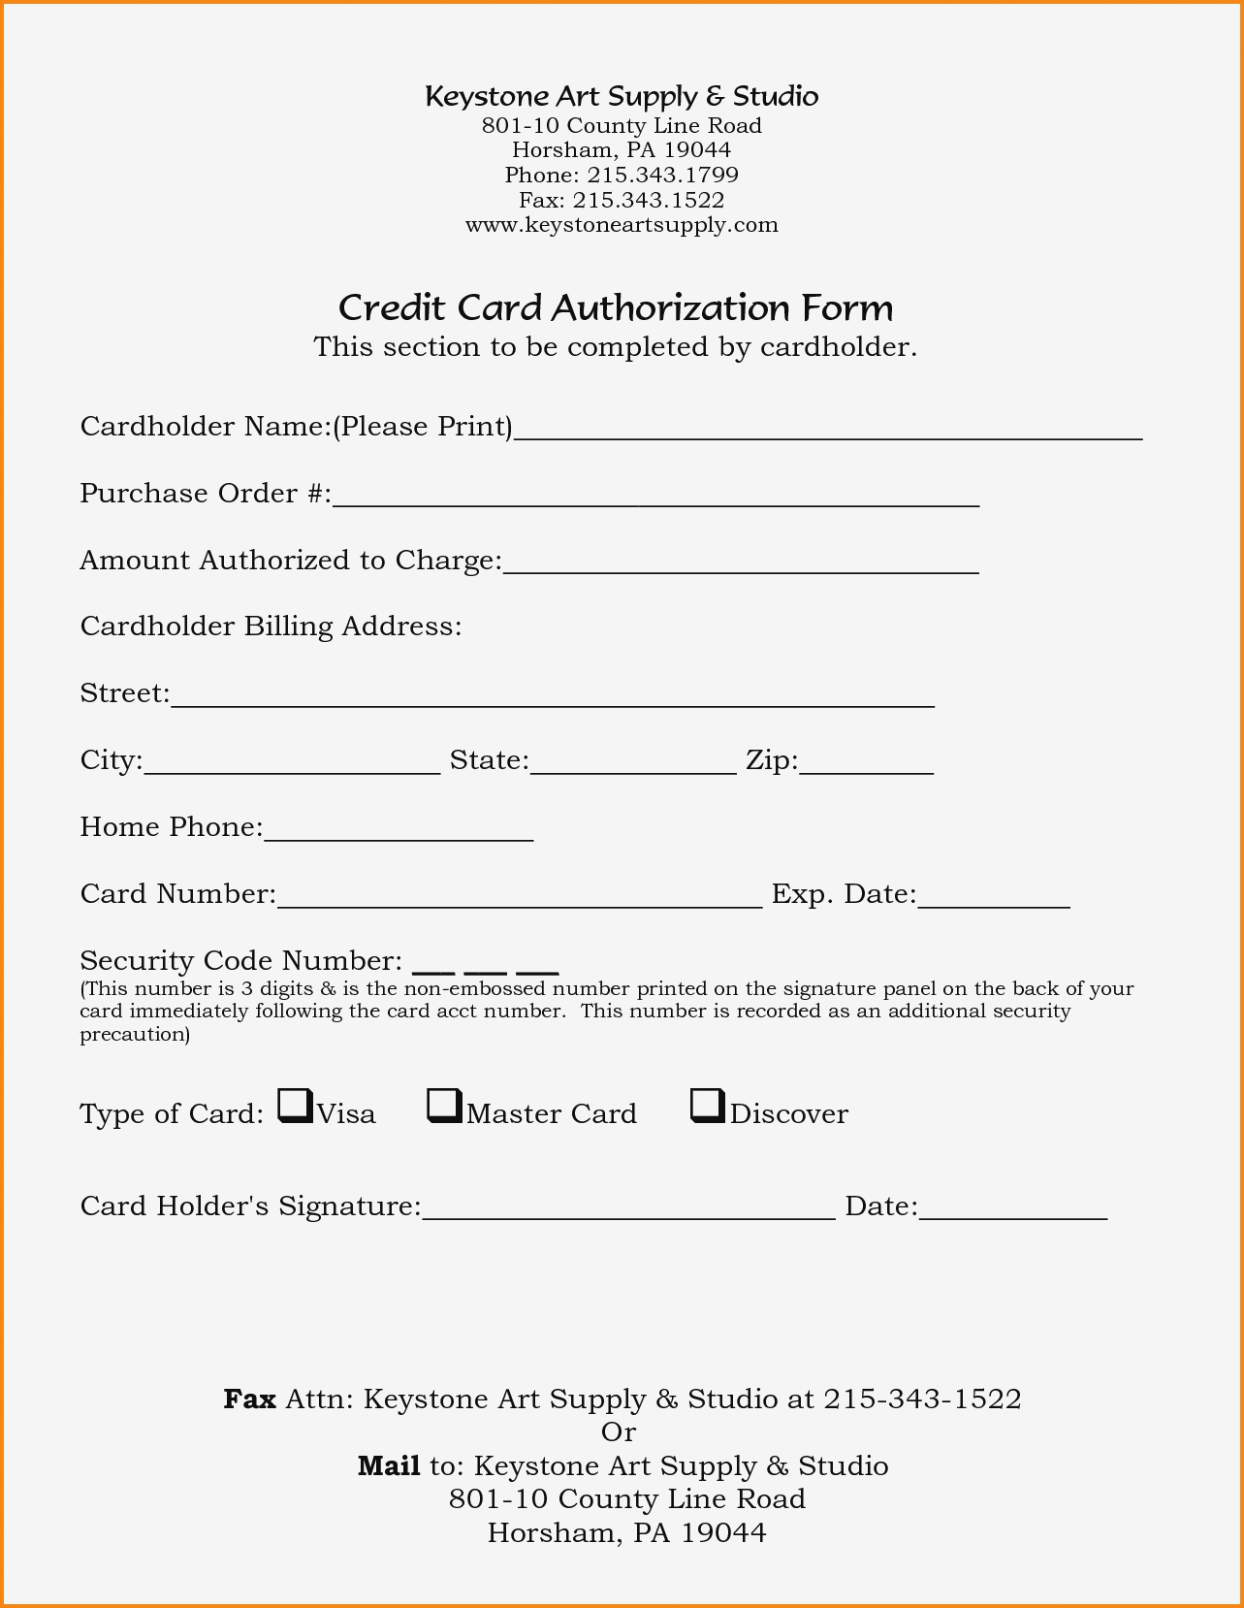 033 Template Ideas Credit Card Authorization Form Payment with regard to Credit Card Authorization Form Template Word